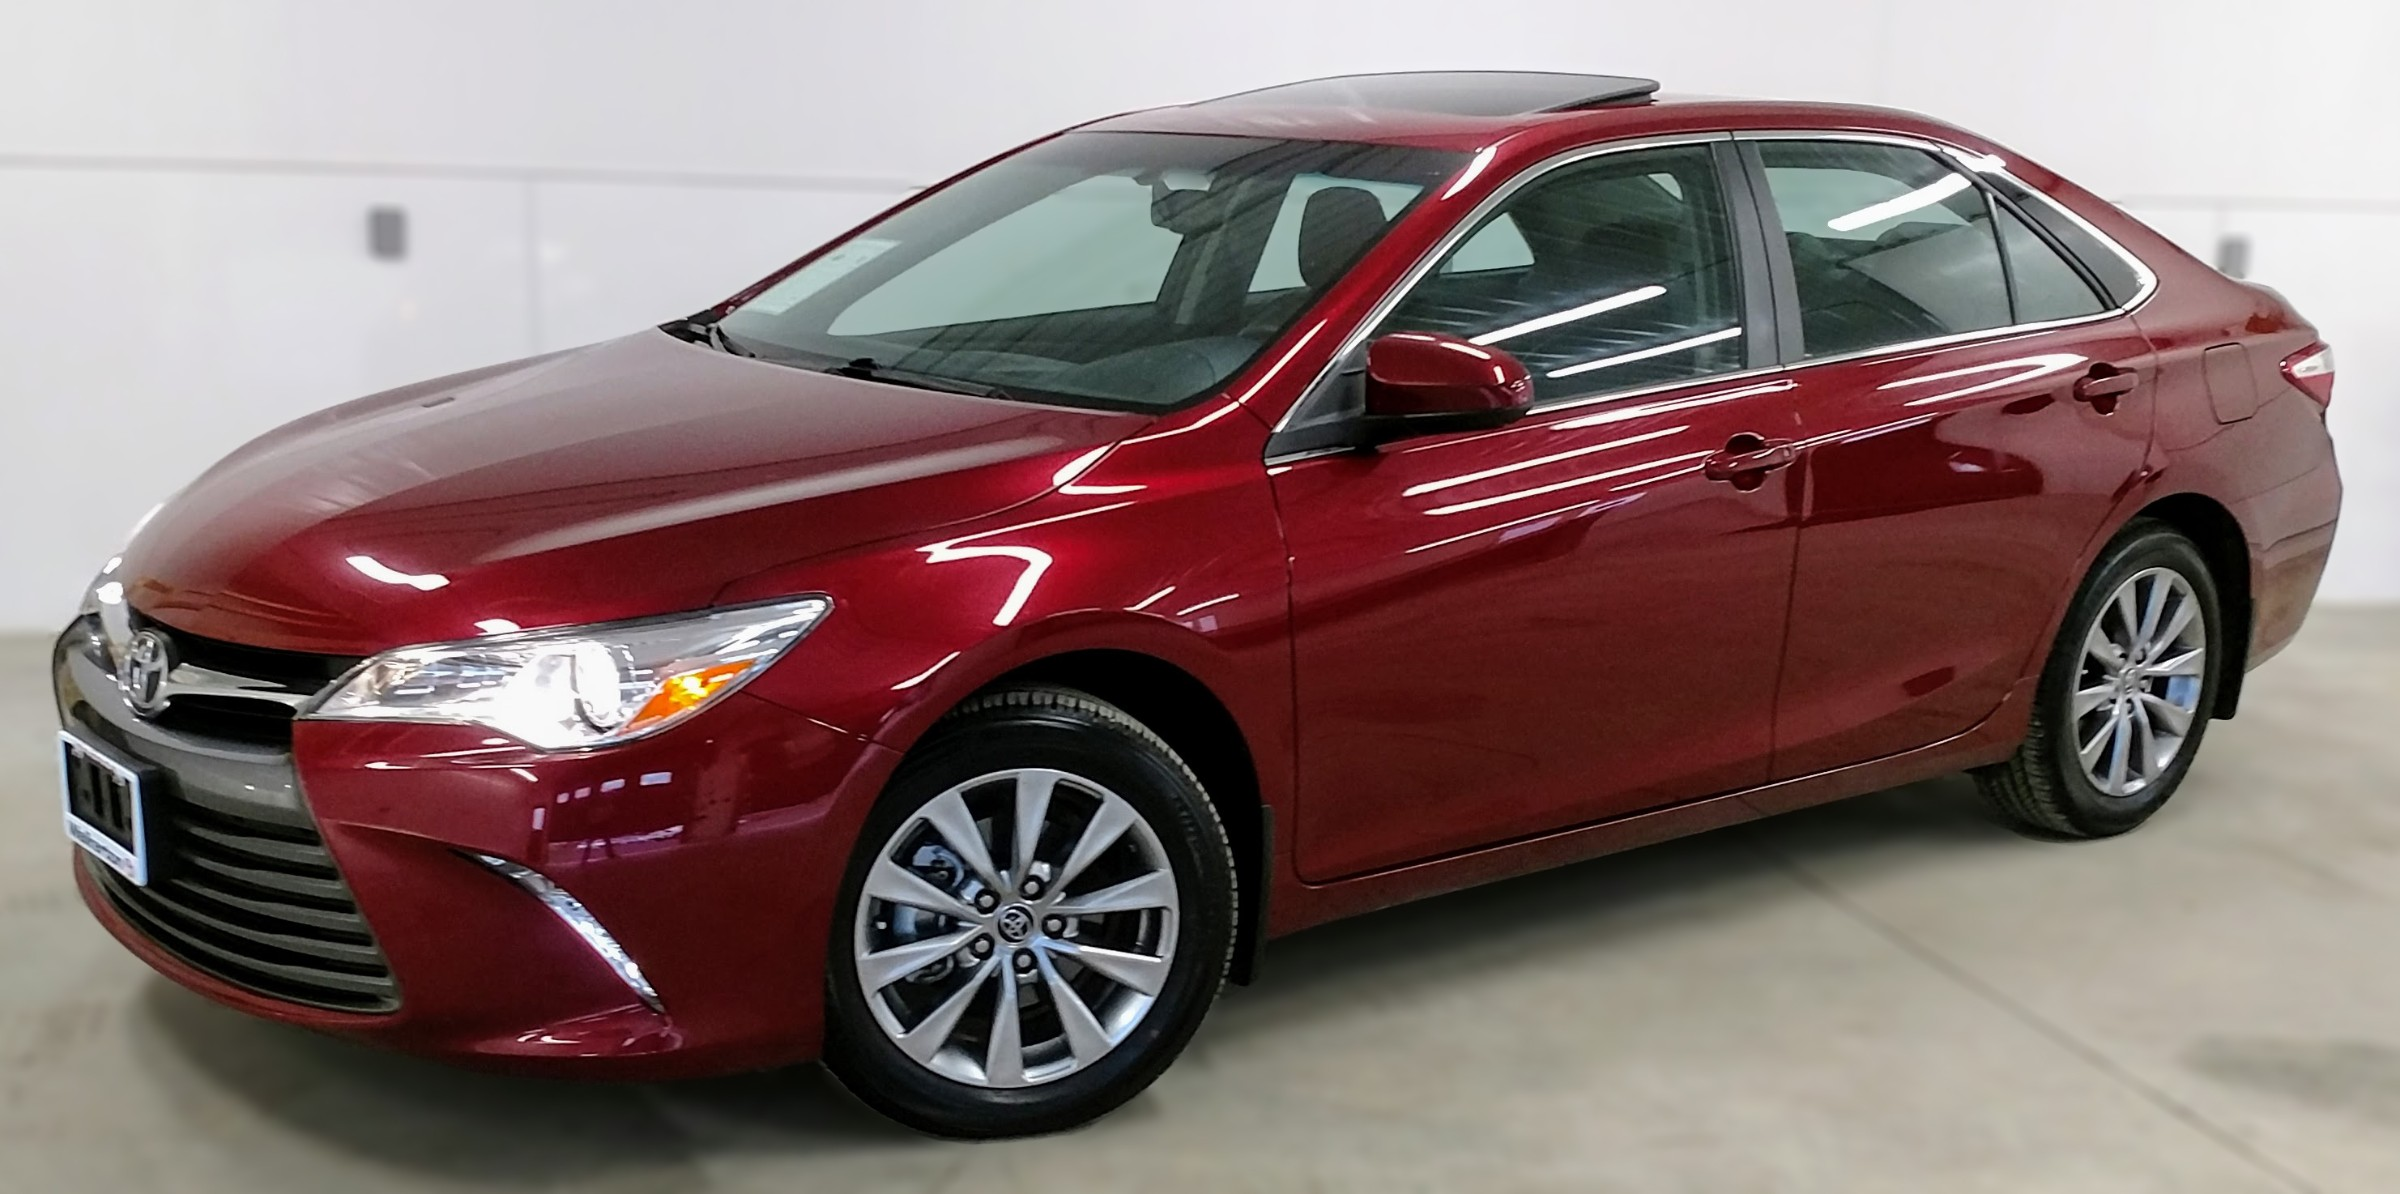 2015 Toyota Camry XLE 4T1BF1FK5FU934657 18114A in Kincardine